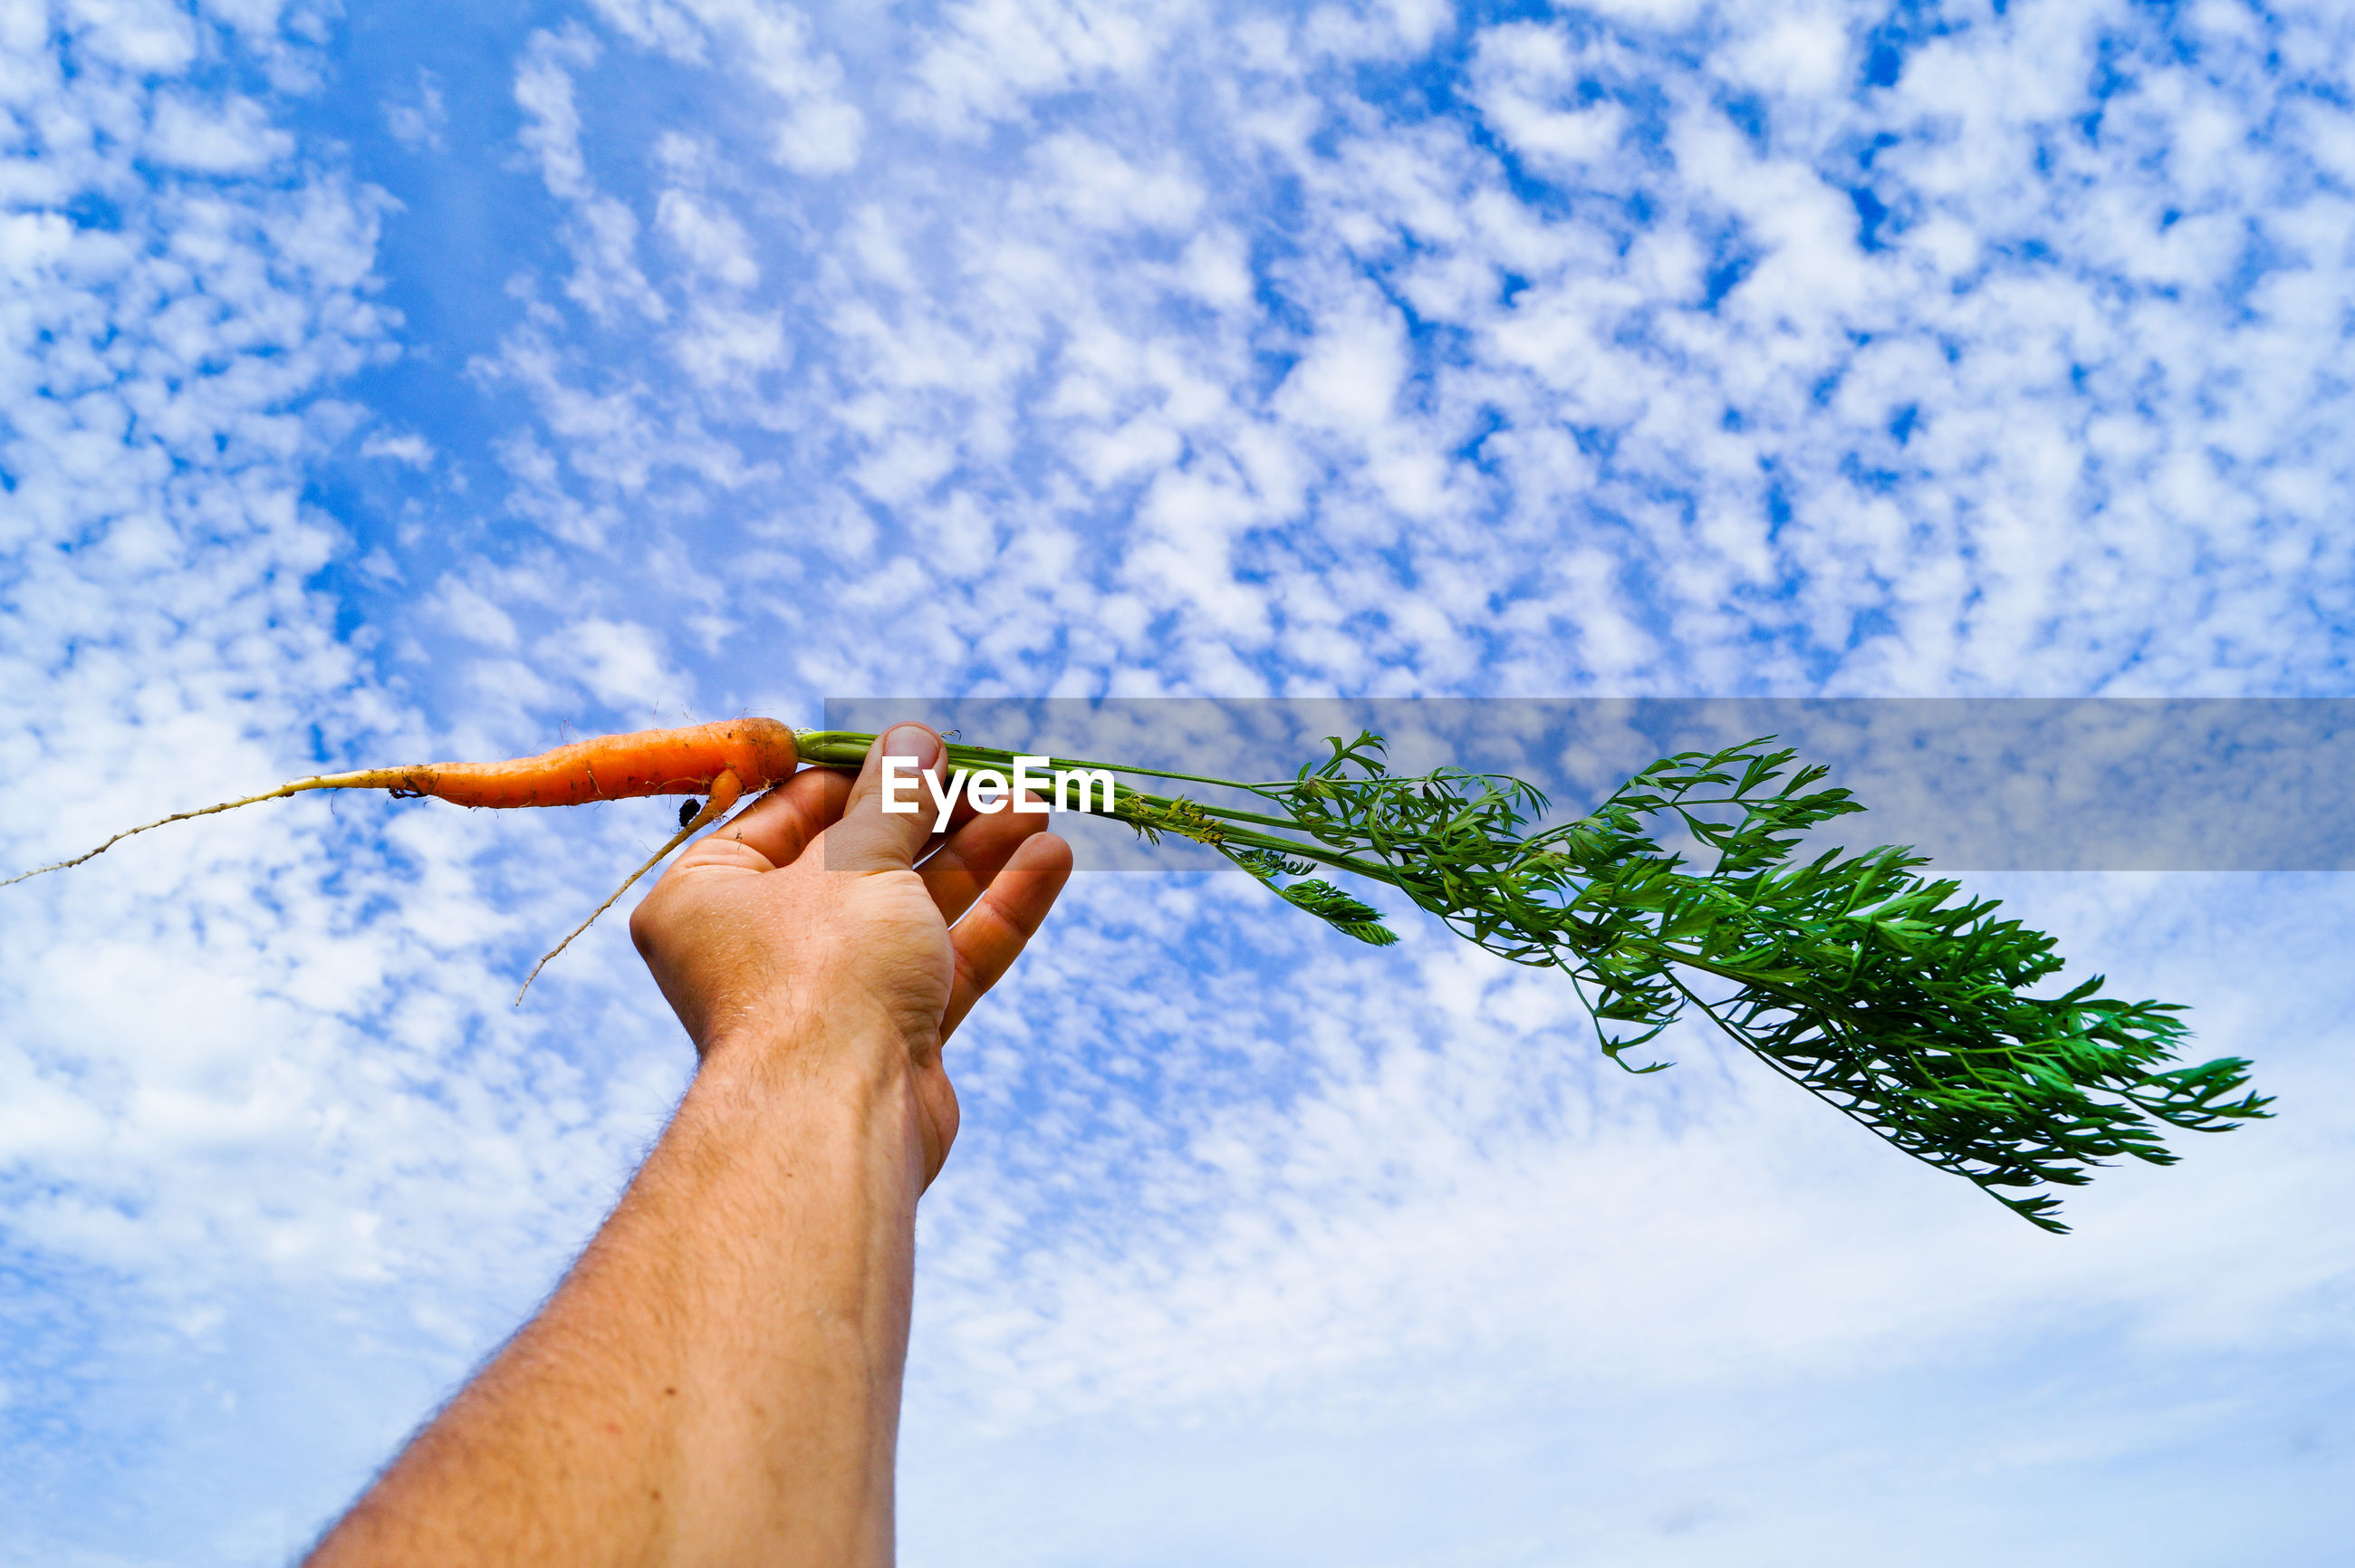 Low angle view of hand holding carrot against cloudy sky